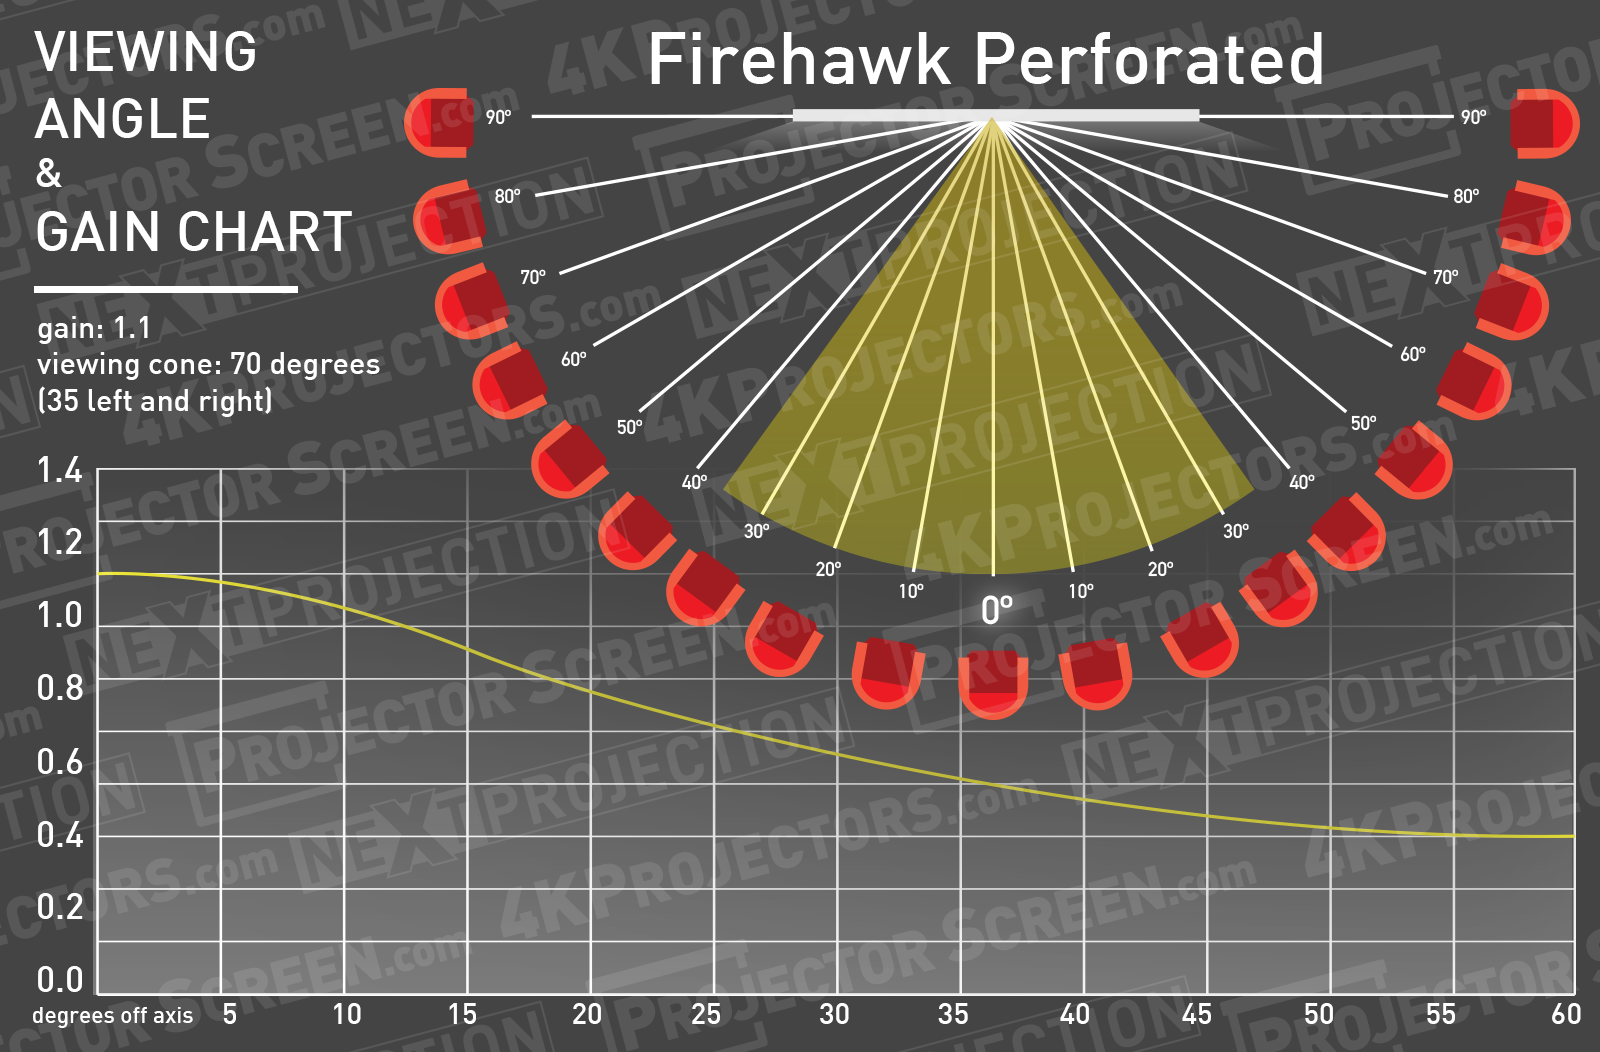 Stewart Firehawk G4 Perforated Half Gain Angle Chart